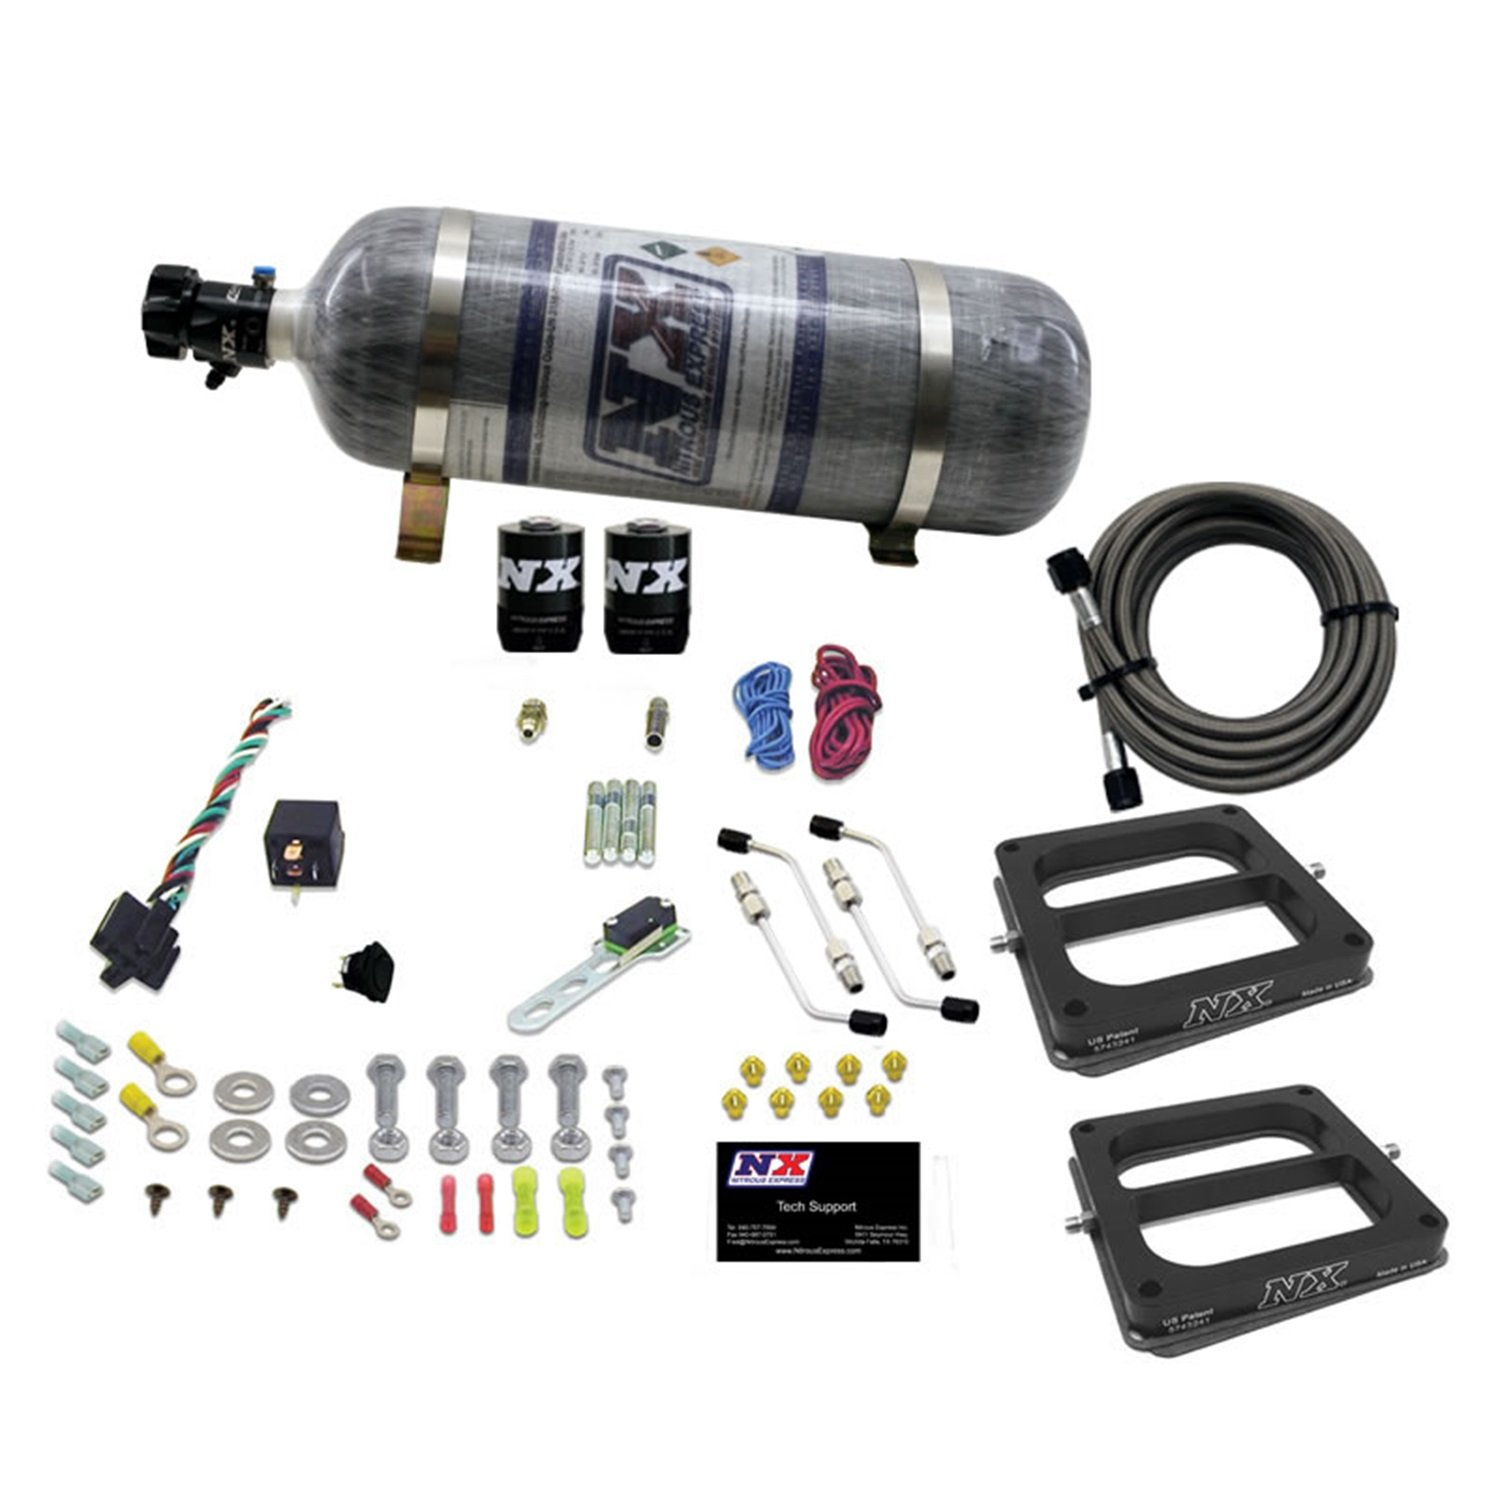 Composite Bottle Nitrous Express 30275-12 50-300 HP Dual//Dominator//Alcohol Conventional Stage 6 Plate System with 12 lbs